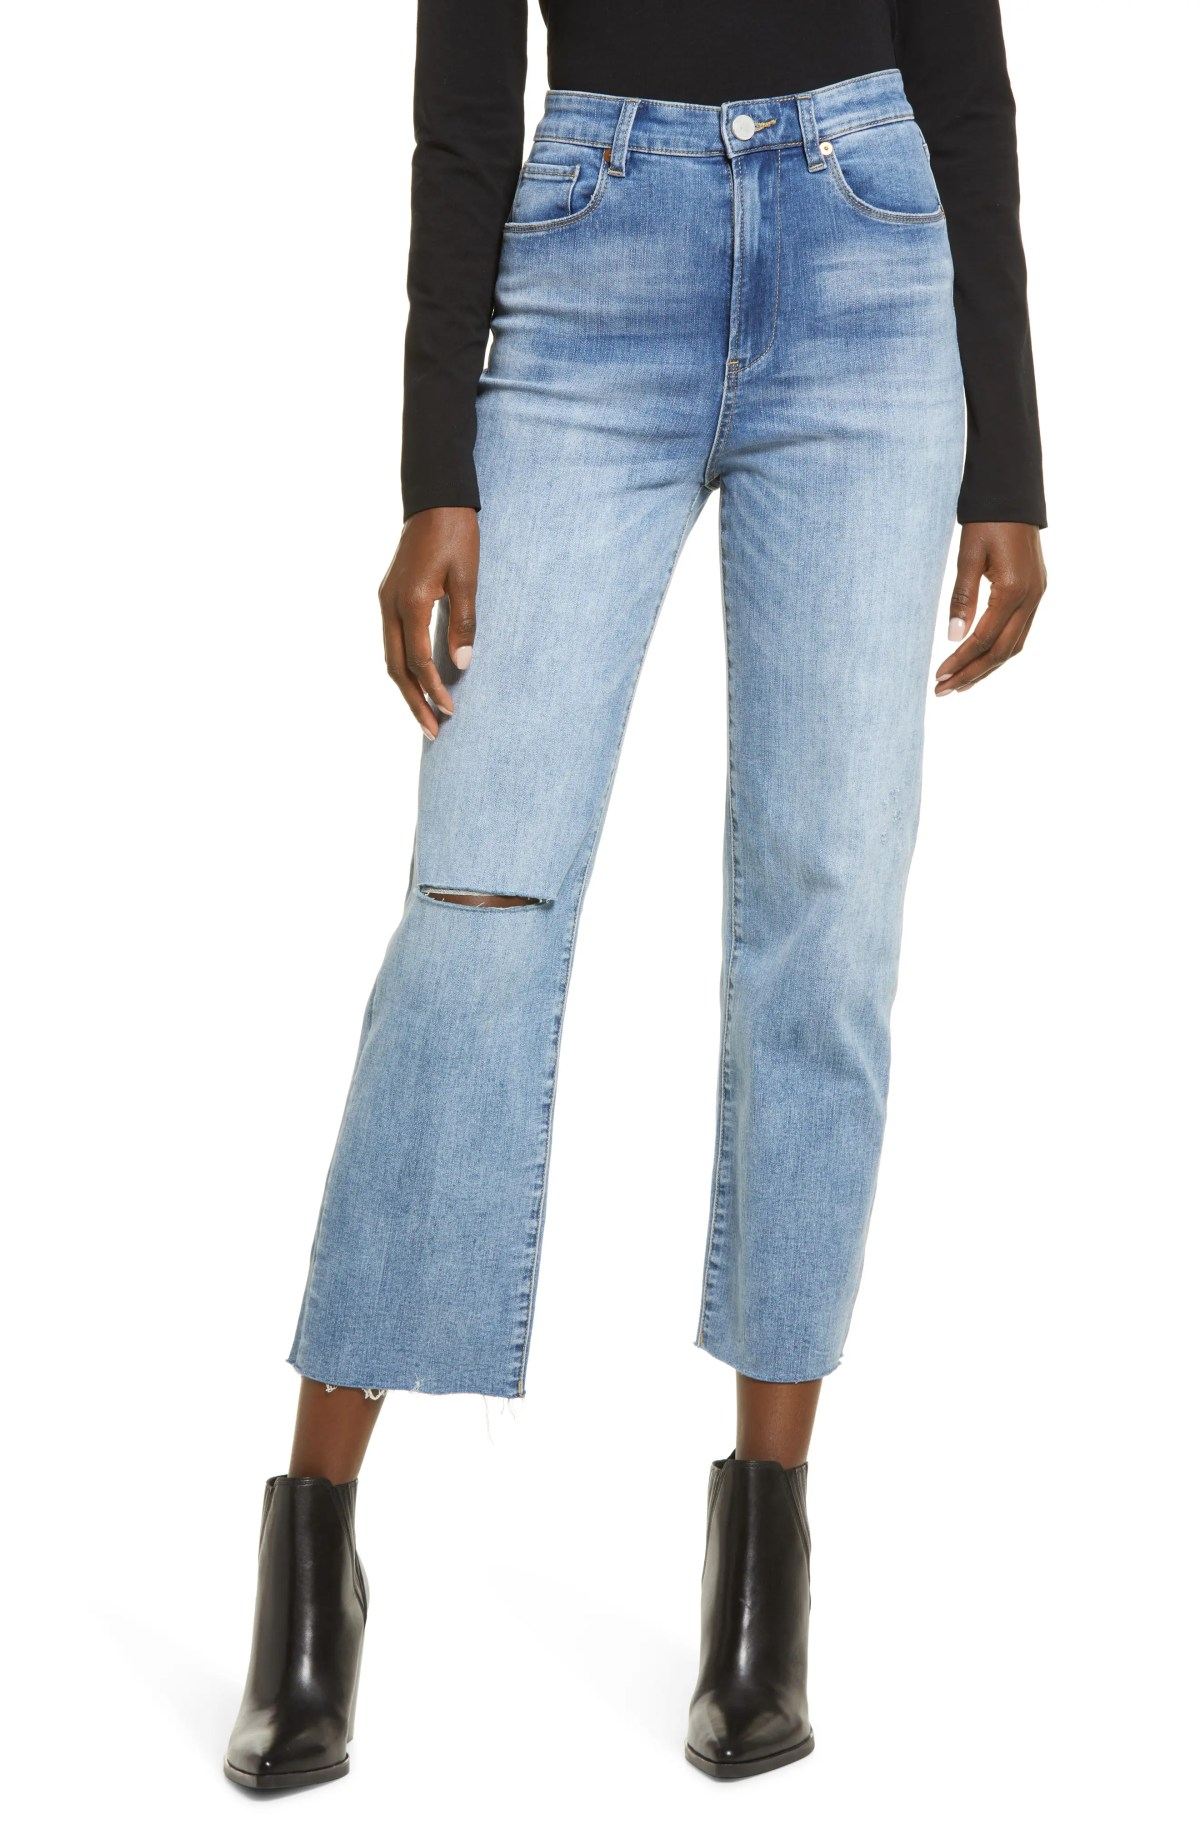 BLANKNYC Baxter Super High Waist Ripped Raw Hem Straight Leg Jeans, Main, color, LOVE TO SEE IT